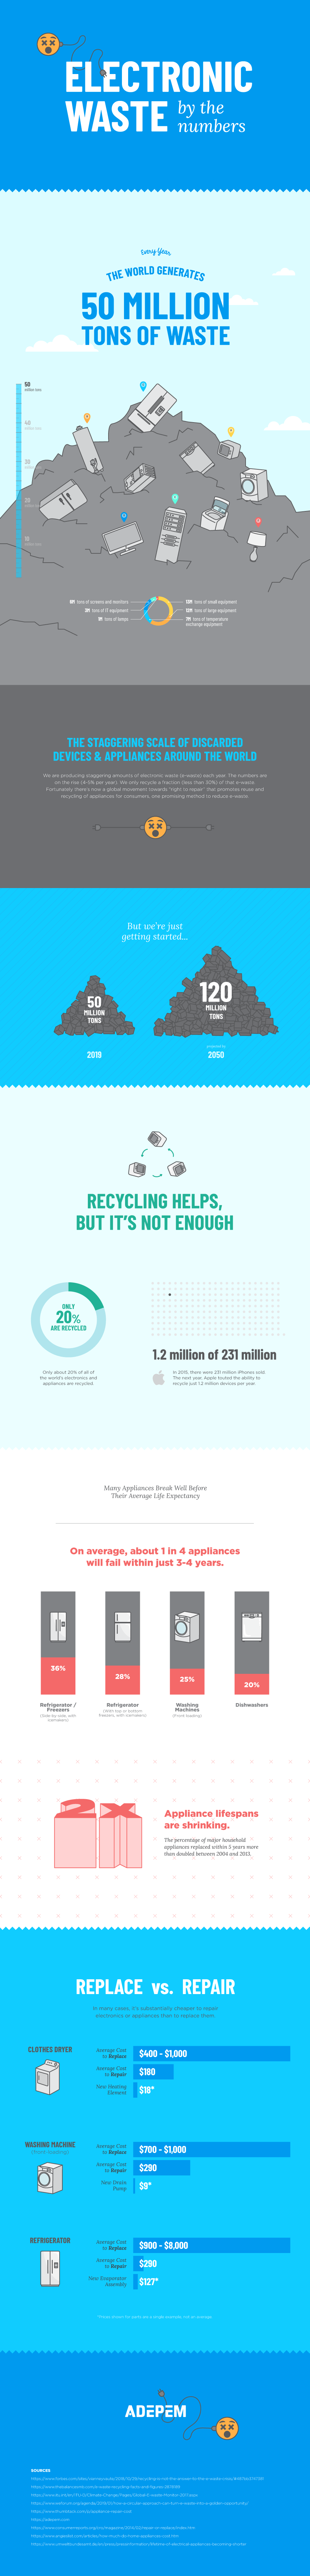 E-Waste Infographic Right to Repair